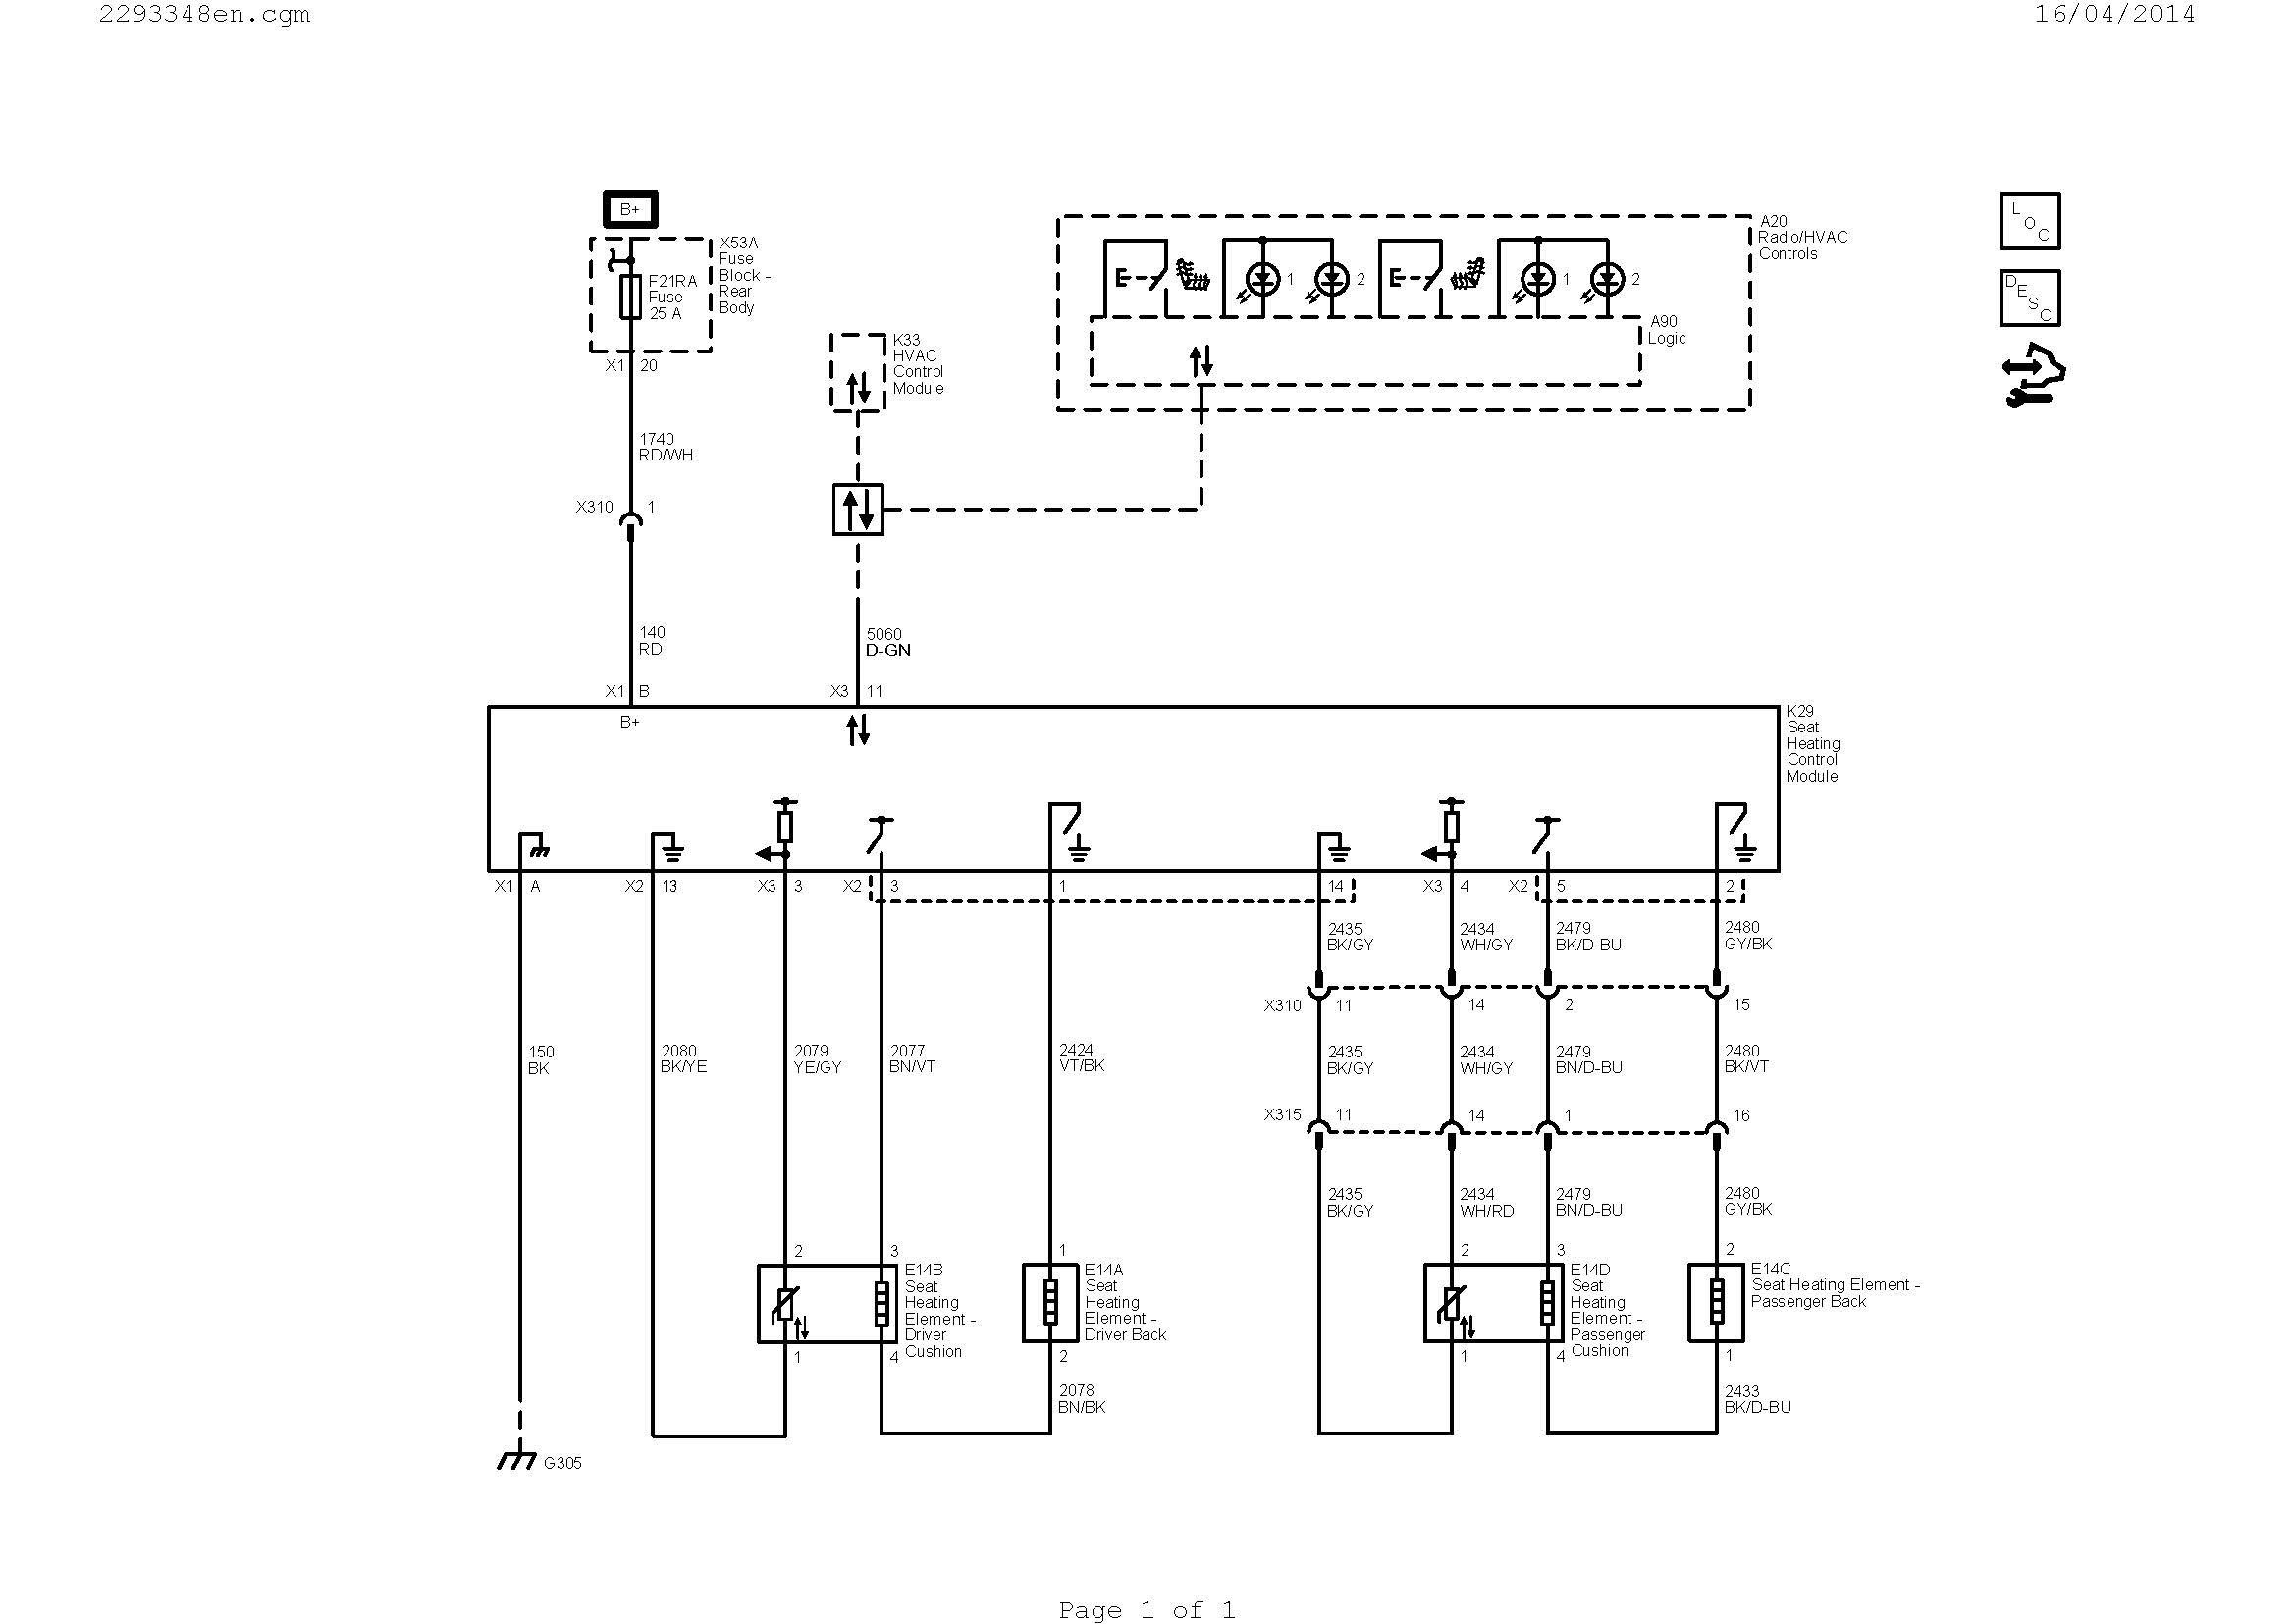 water flow switch wiring diagram Collection-on on on switch wiring diagram Collection Wiring Diagram For A Relay Switch Save Wiring DOWNLOAD Wiring Diagram 10-c